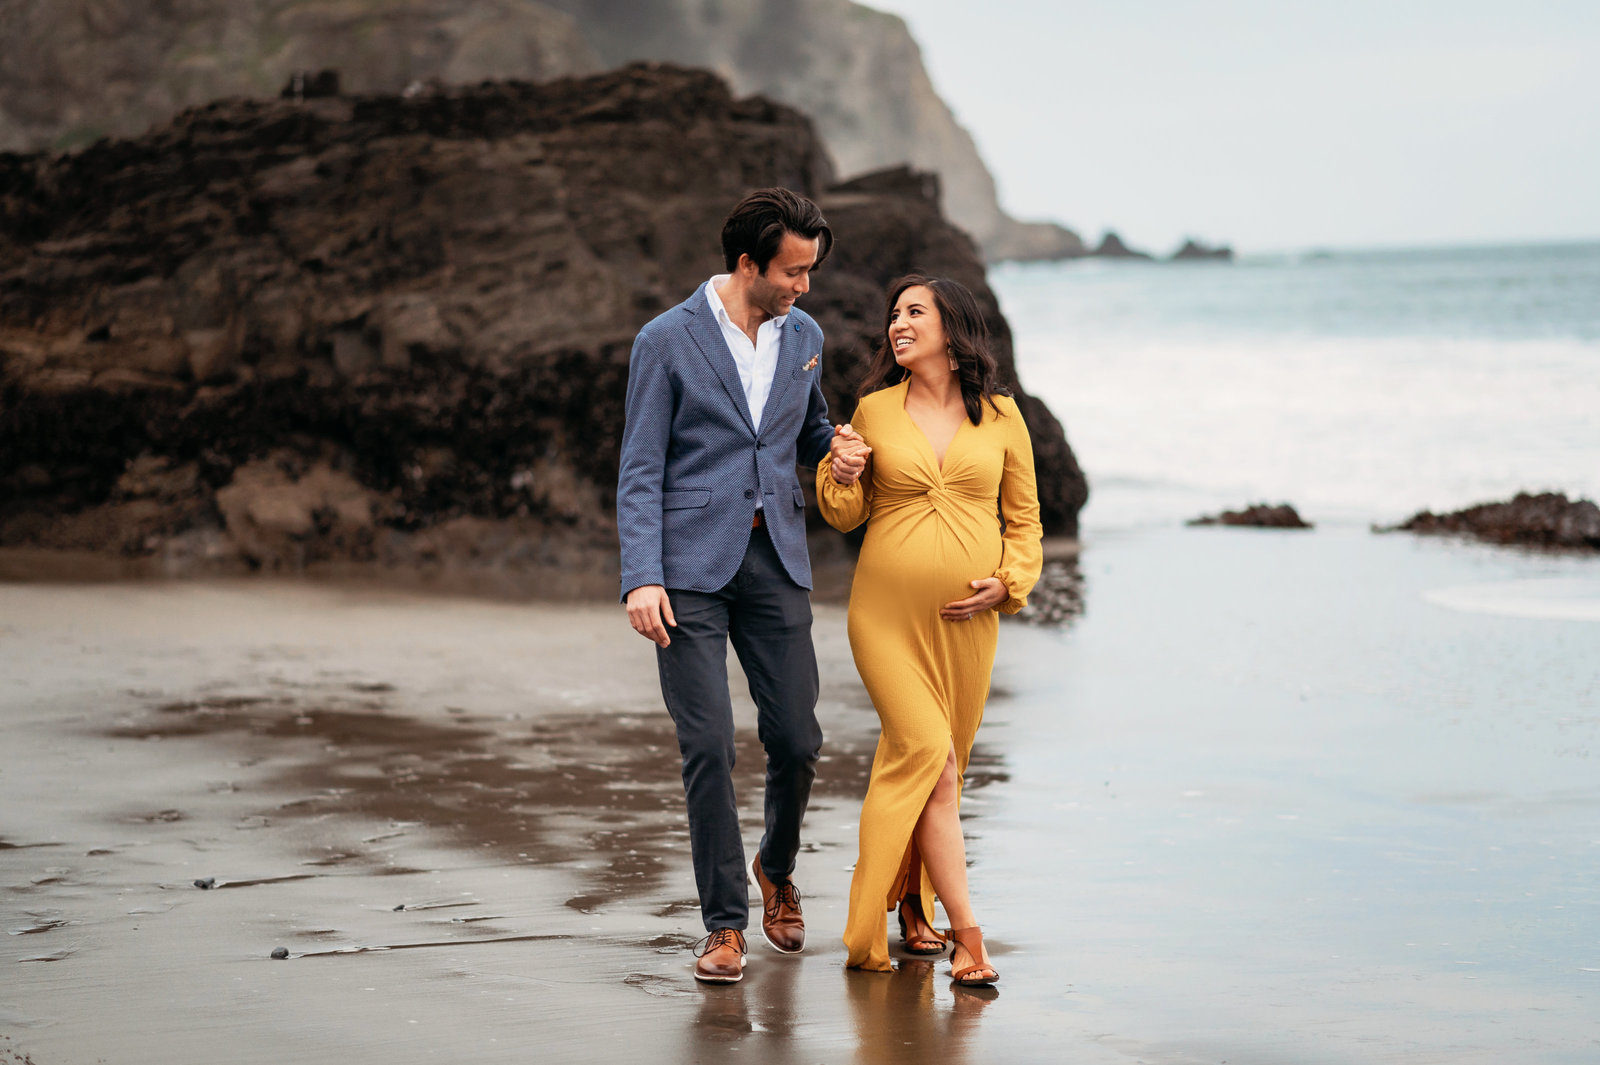 Maternity Photoshoot in China Beach San Francisco Yellow Maternity Dress